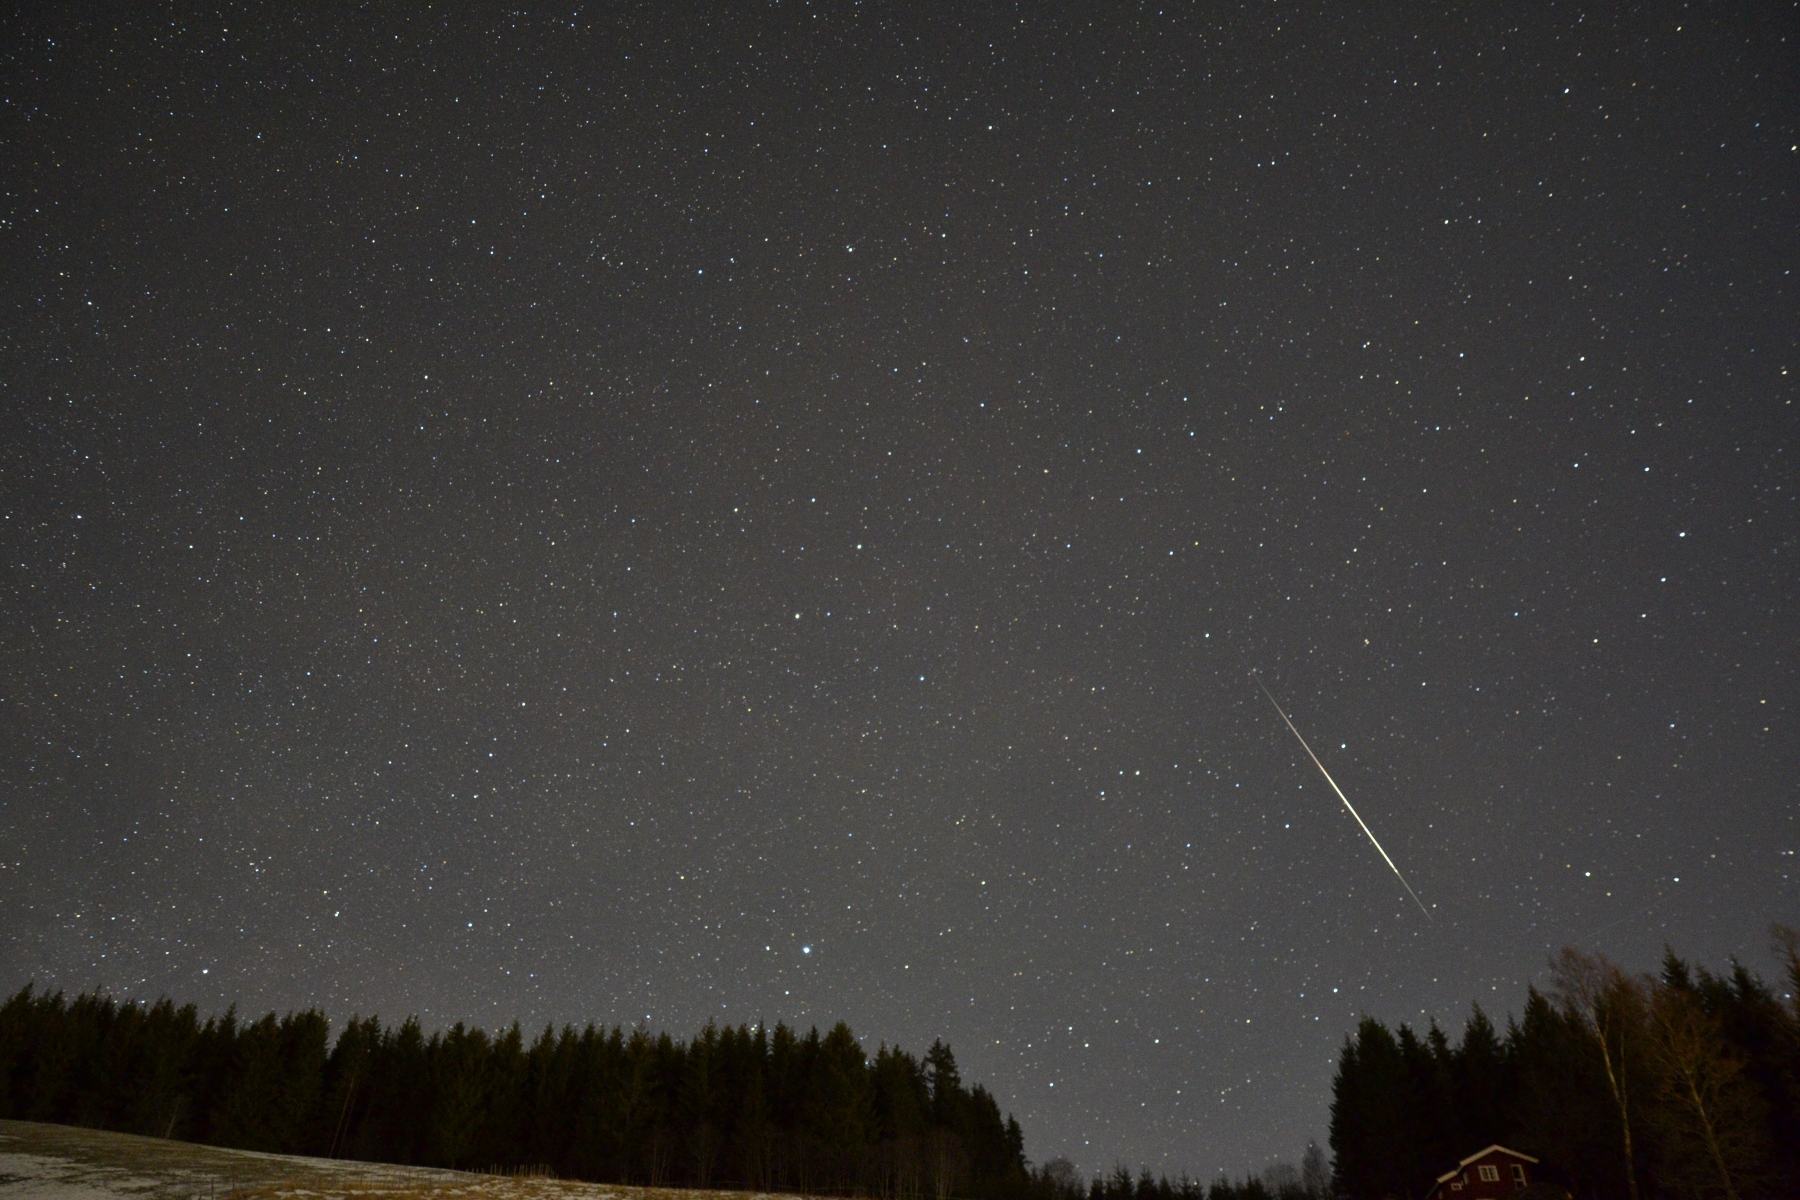 A -4 mag Ursid fireball captured on December 22nd, 2016. Copyright: Kai Frode Gaarder